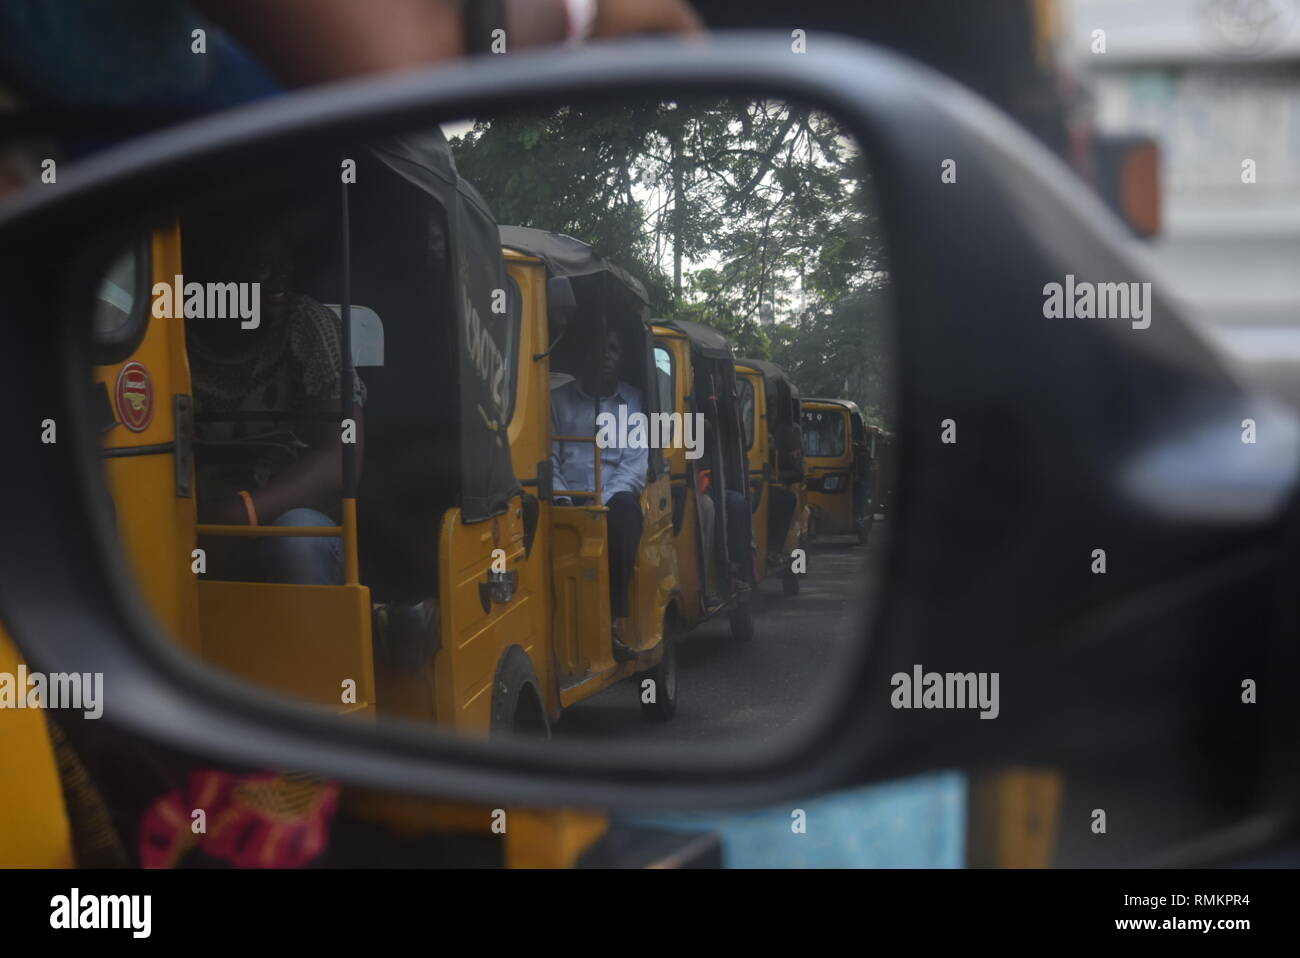 photographs of tricycles a popular means of transportation taken from the reflection of the rear mirror of a car and in-front of the mirror in Lagos - Stock Image